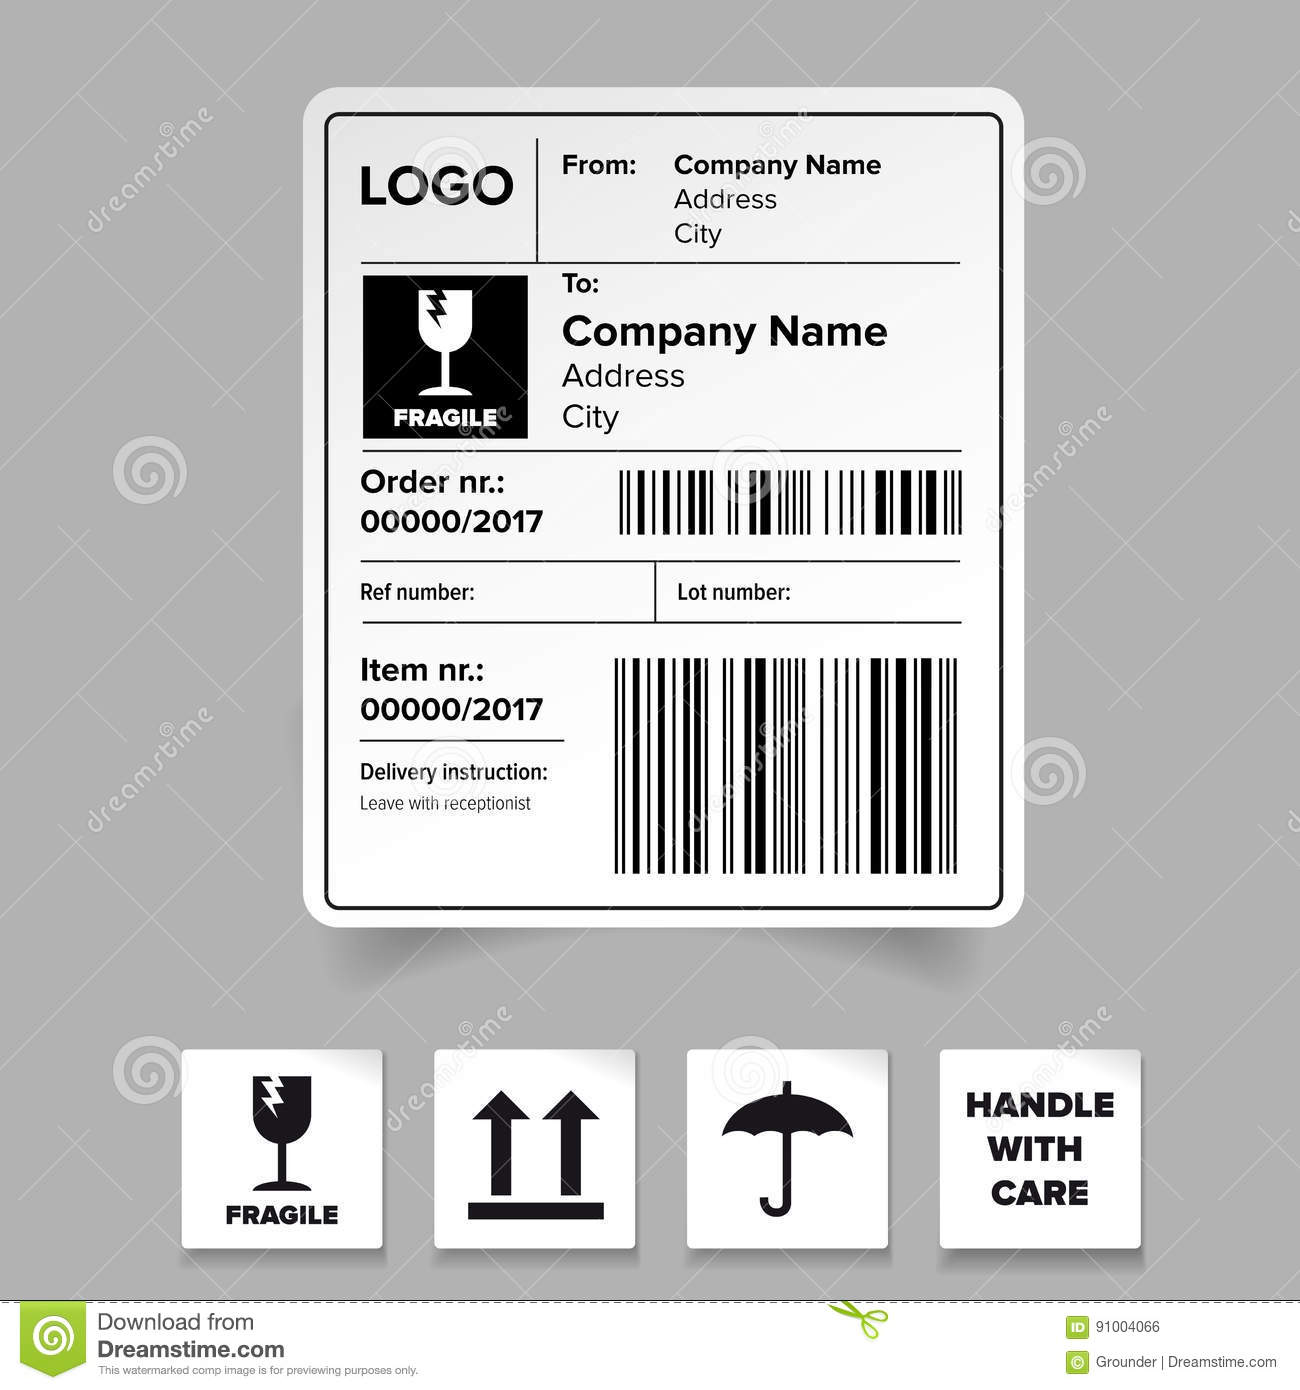 Shipping label template stock vector. Illustration of labels - 91004066